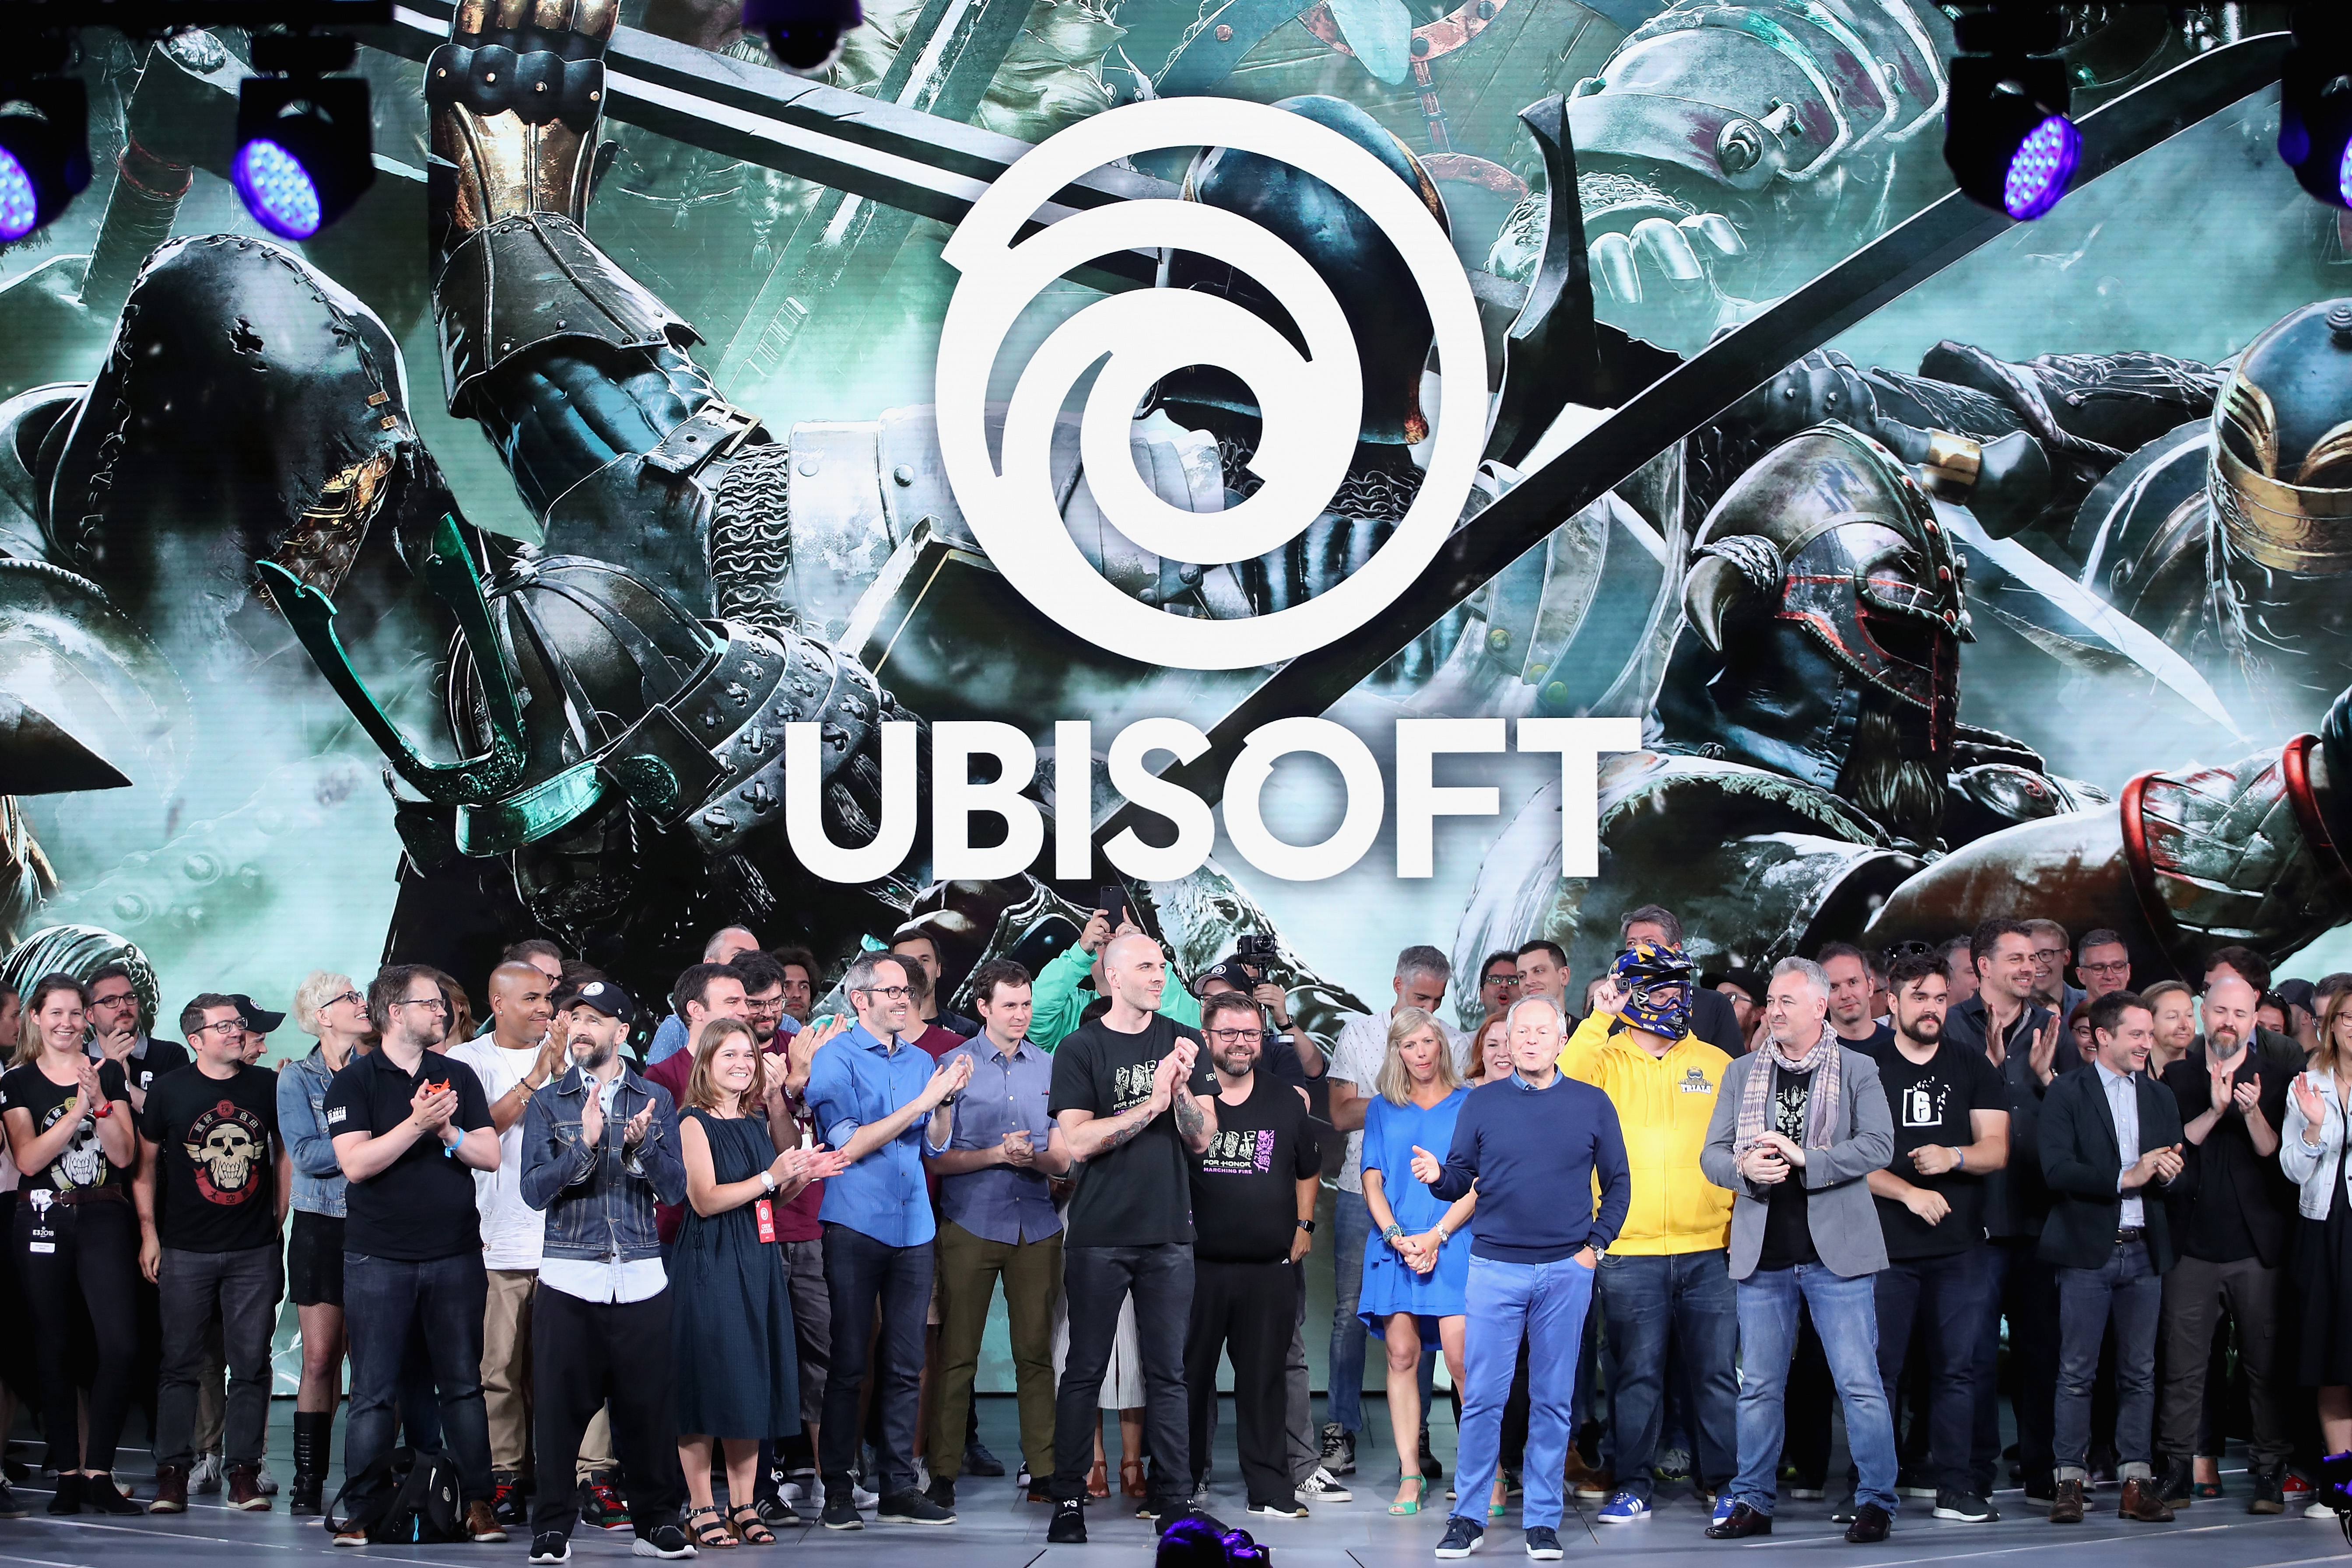 Ubisoft E3 2019 press conference: date and start time